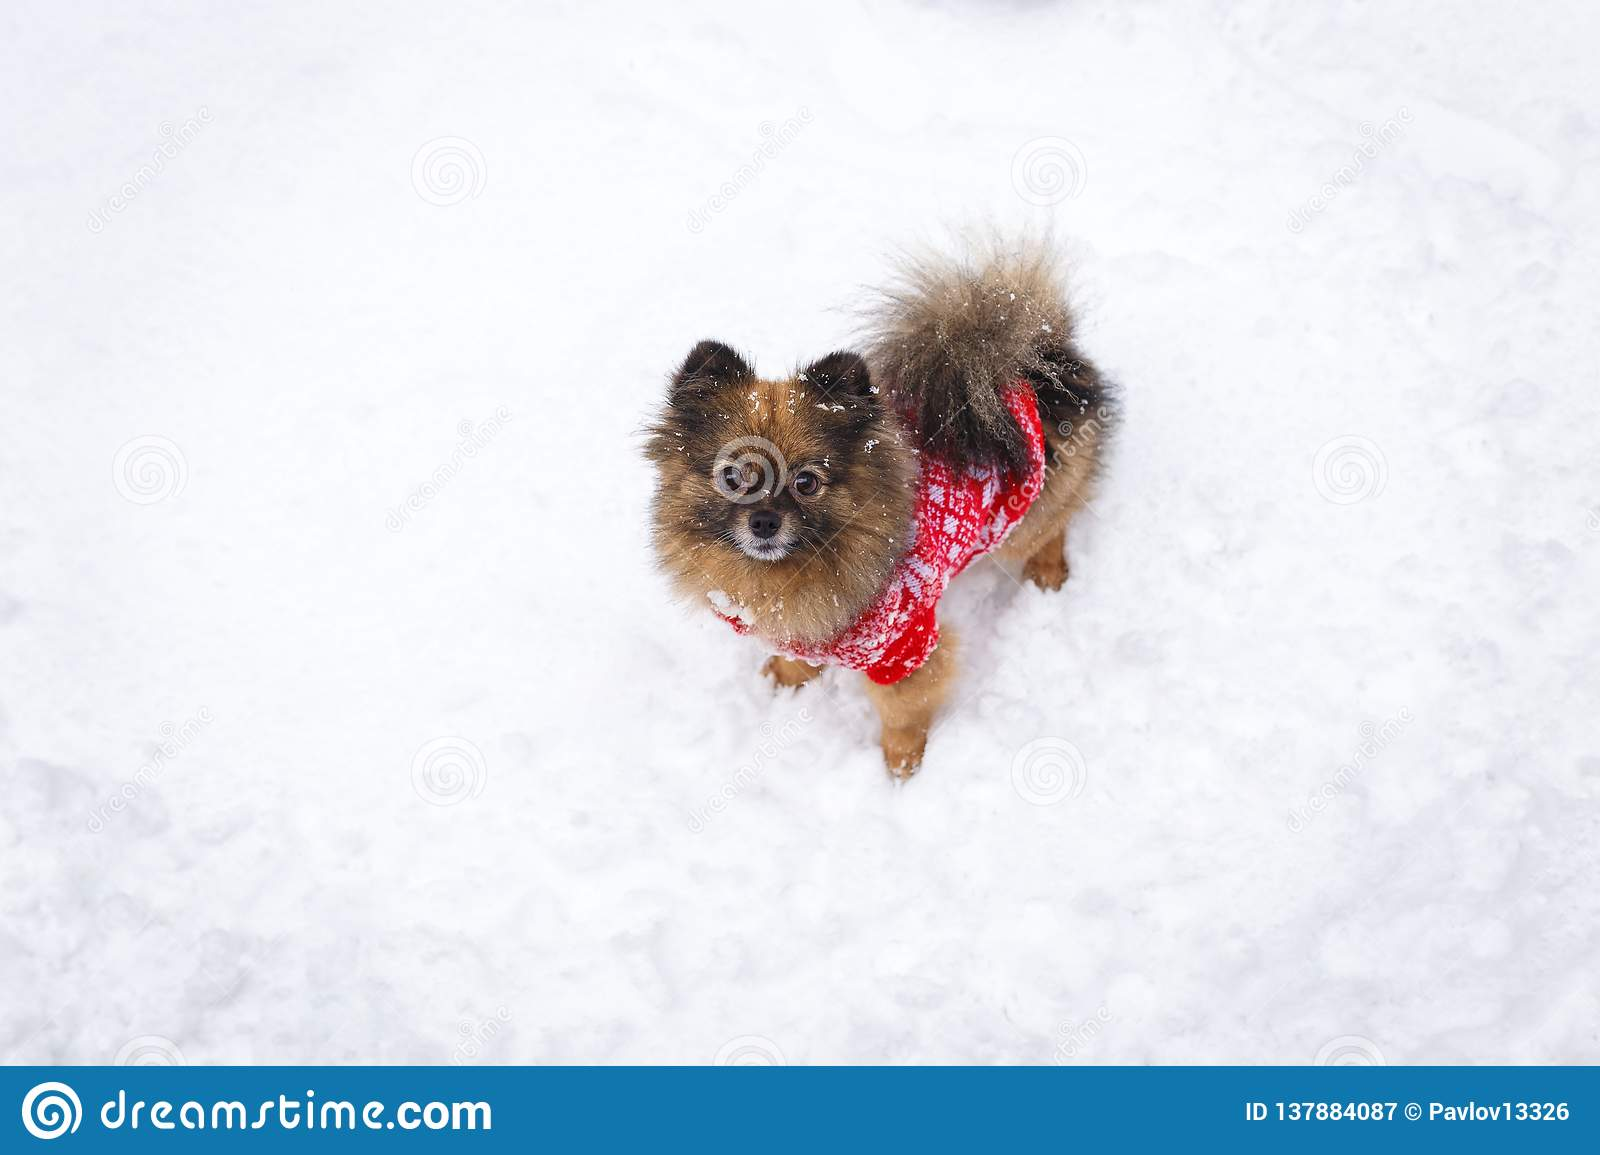 Dog in a red sweater in the winter forest